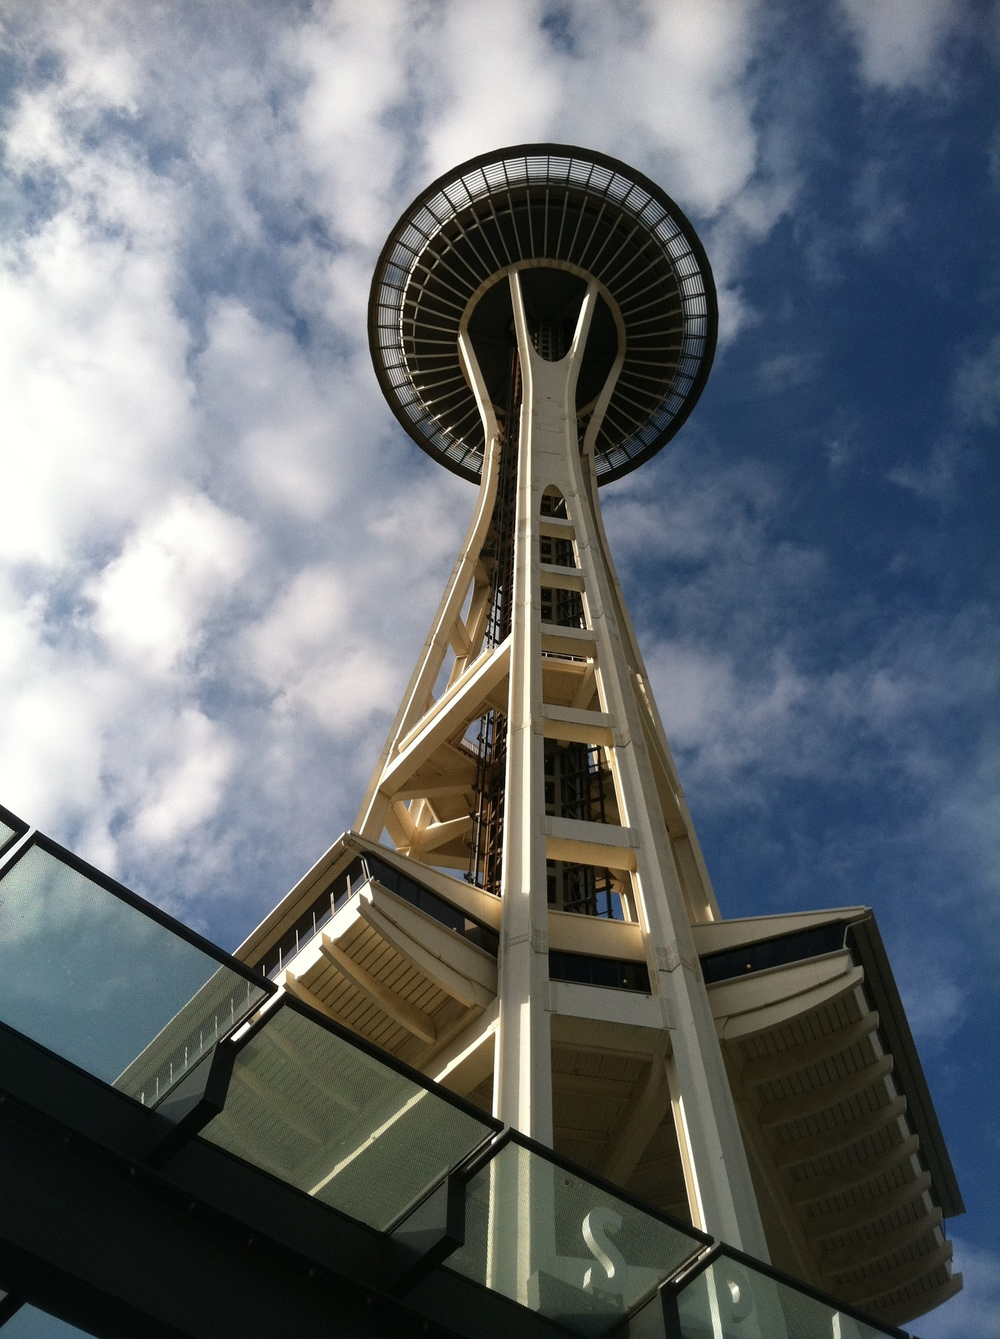 iPhone pictures of the Seattle Space Needle